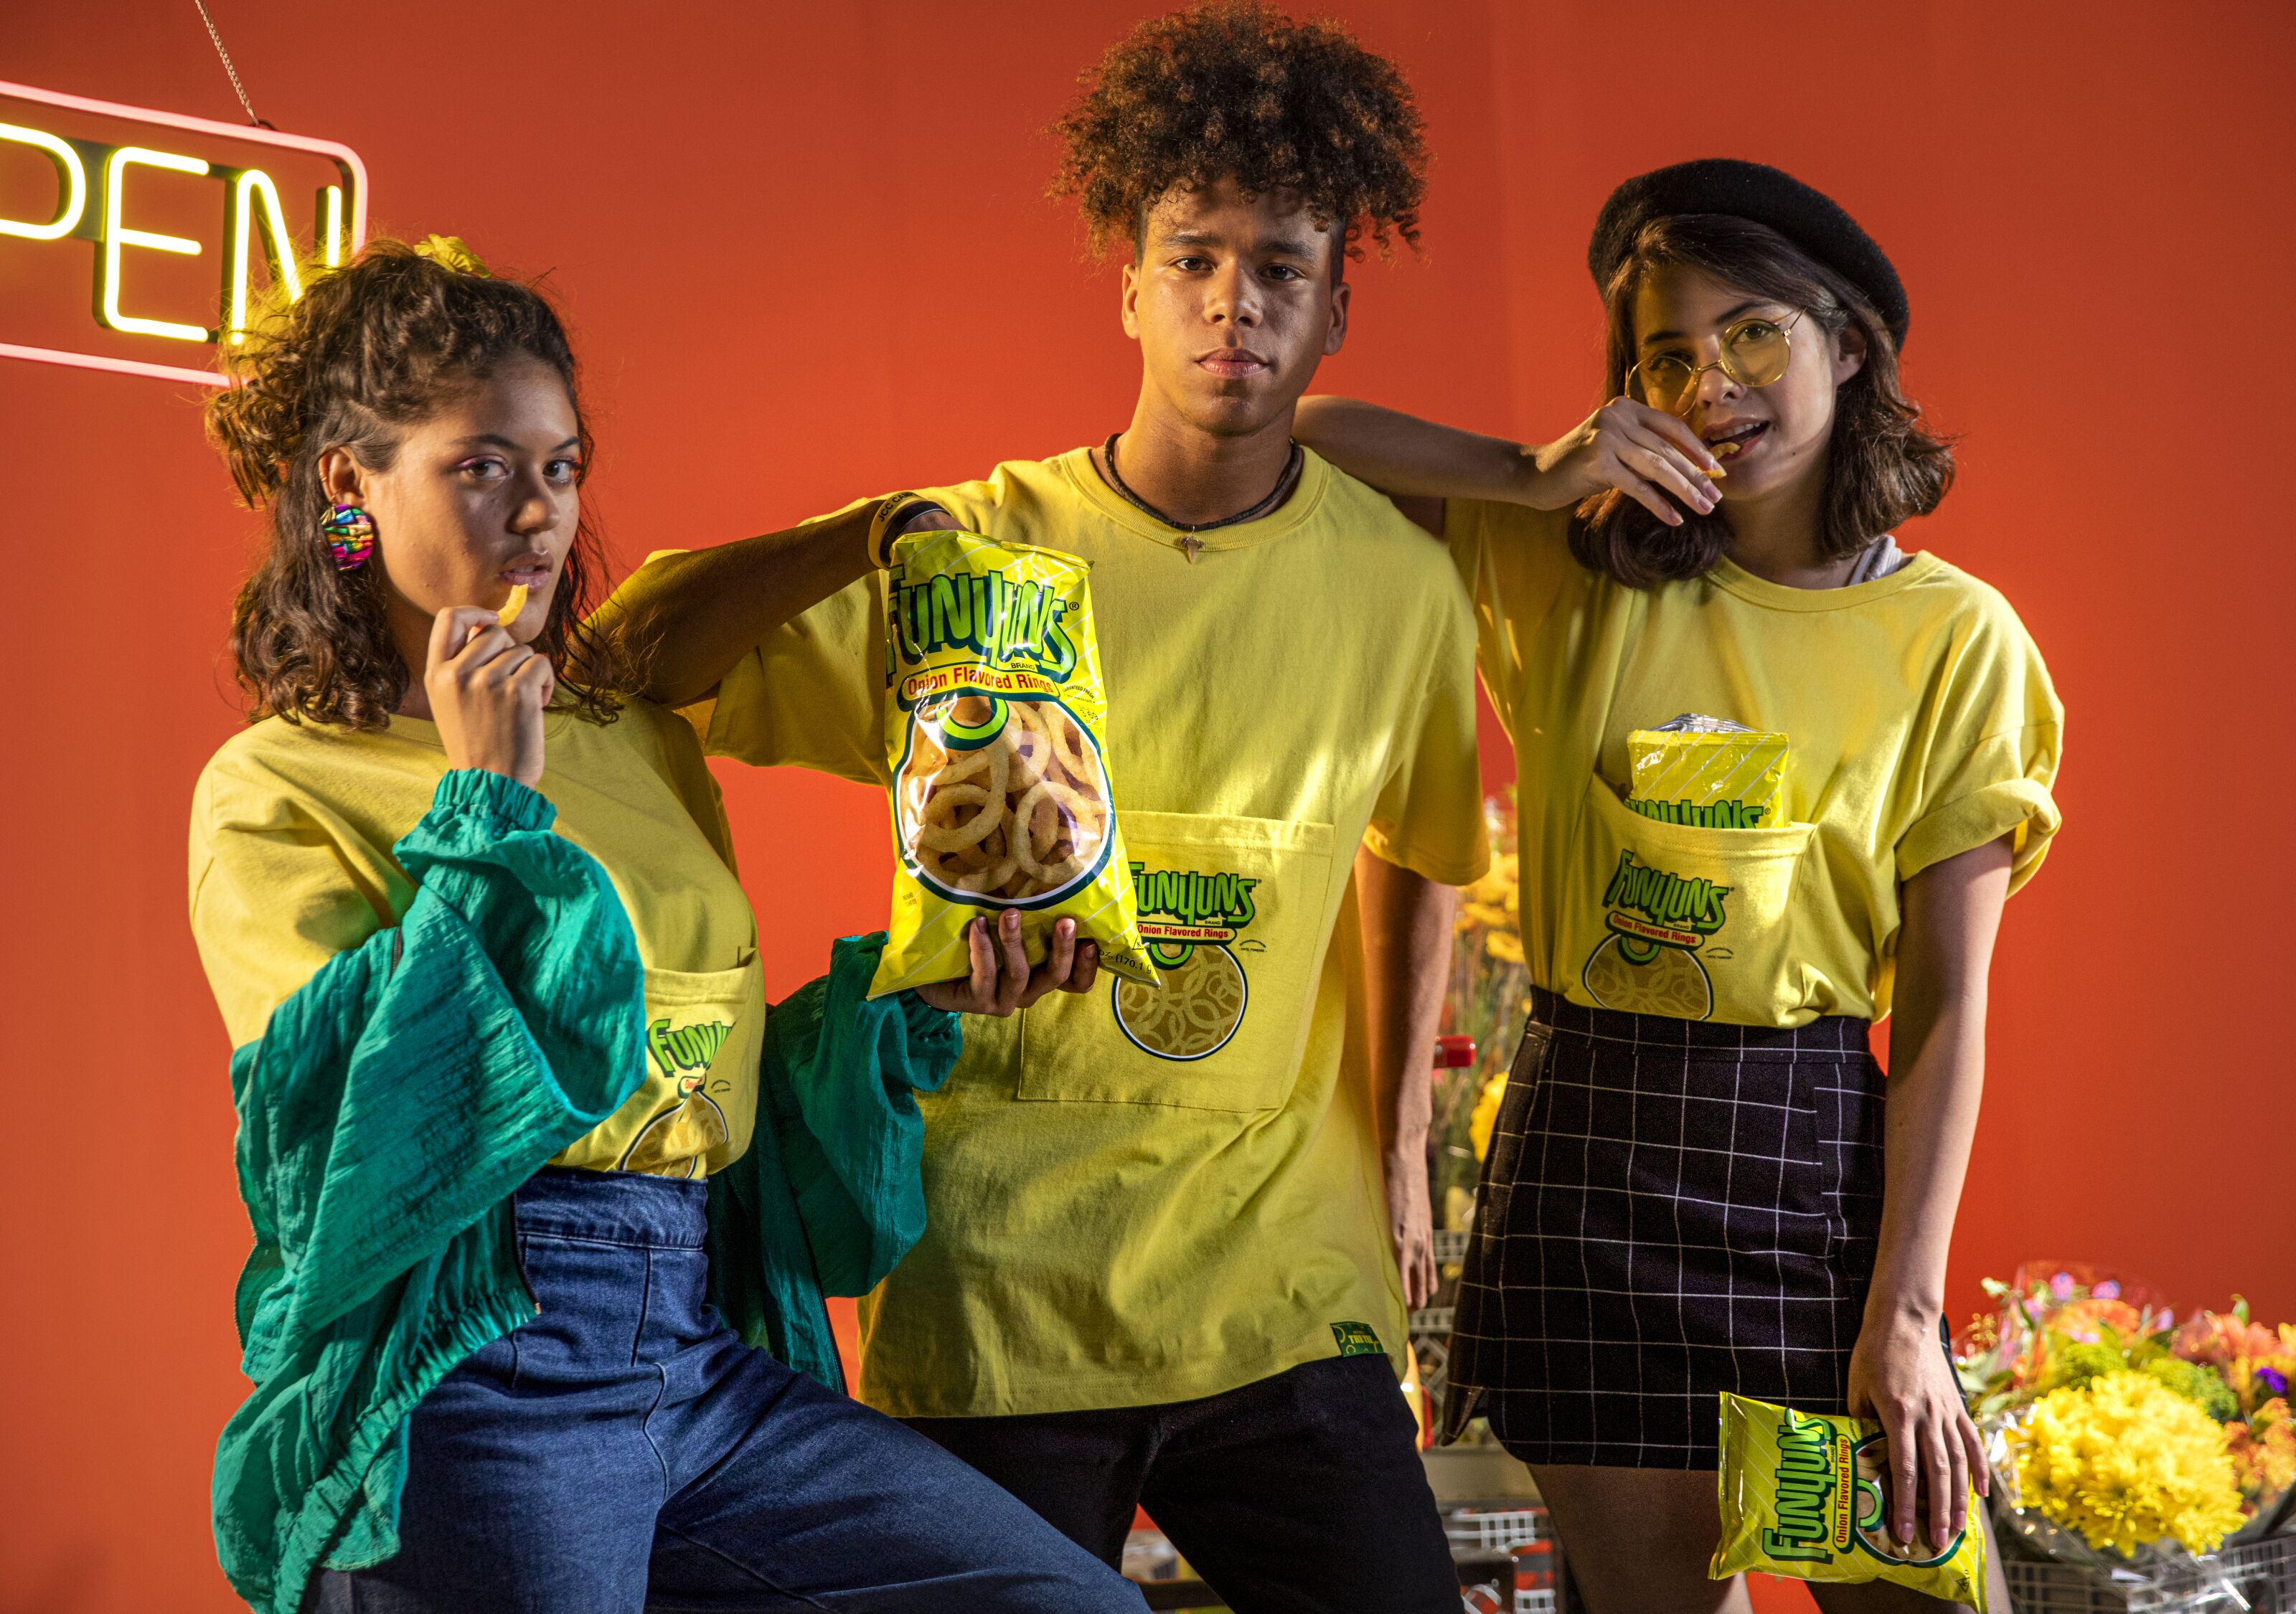 Funyuns fashion is perfect for snacking on the go